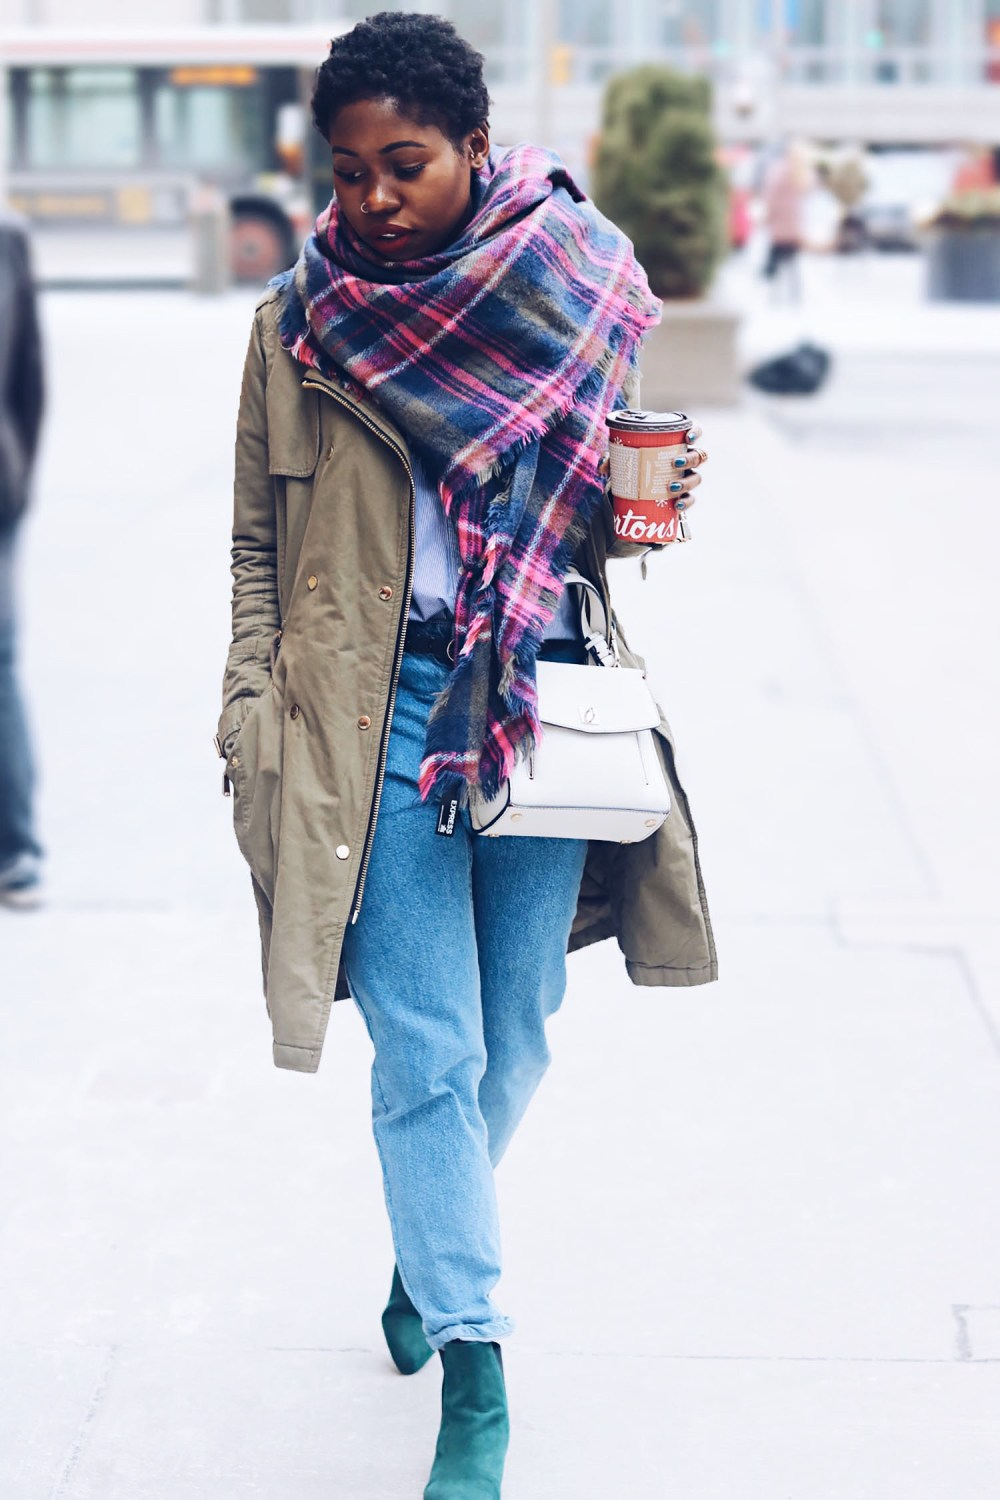 style-synopsis-winter-layers-in-plaid.